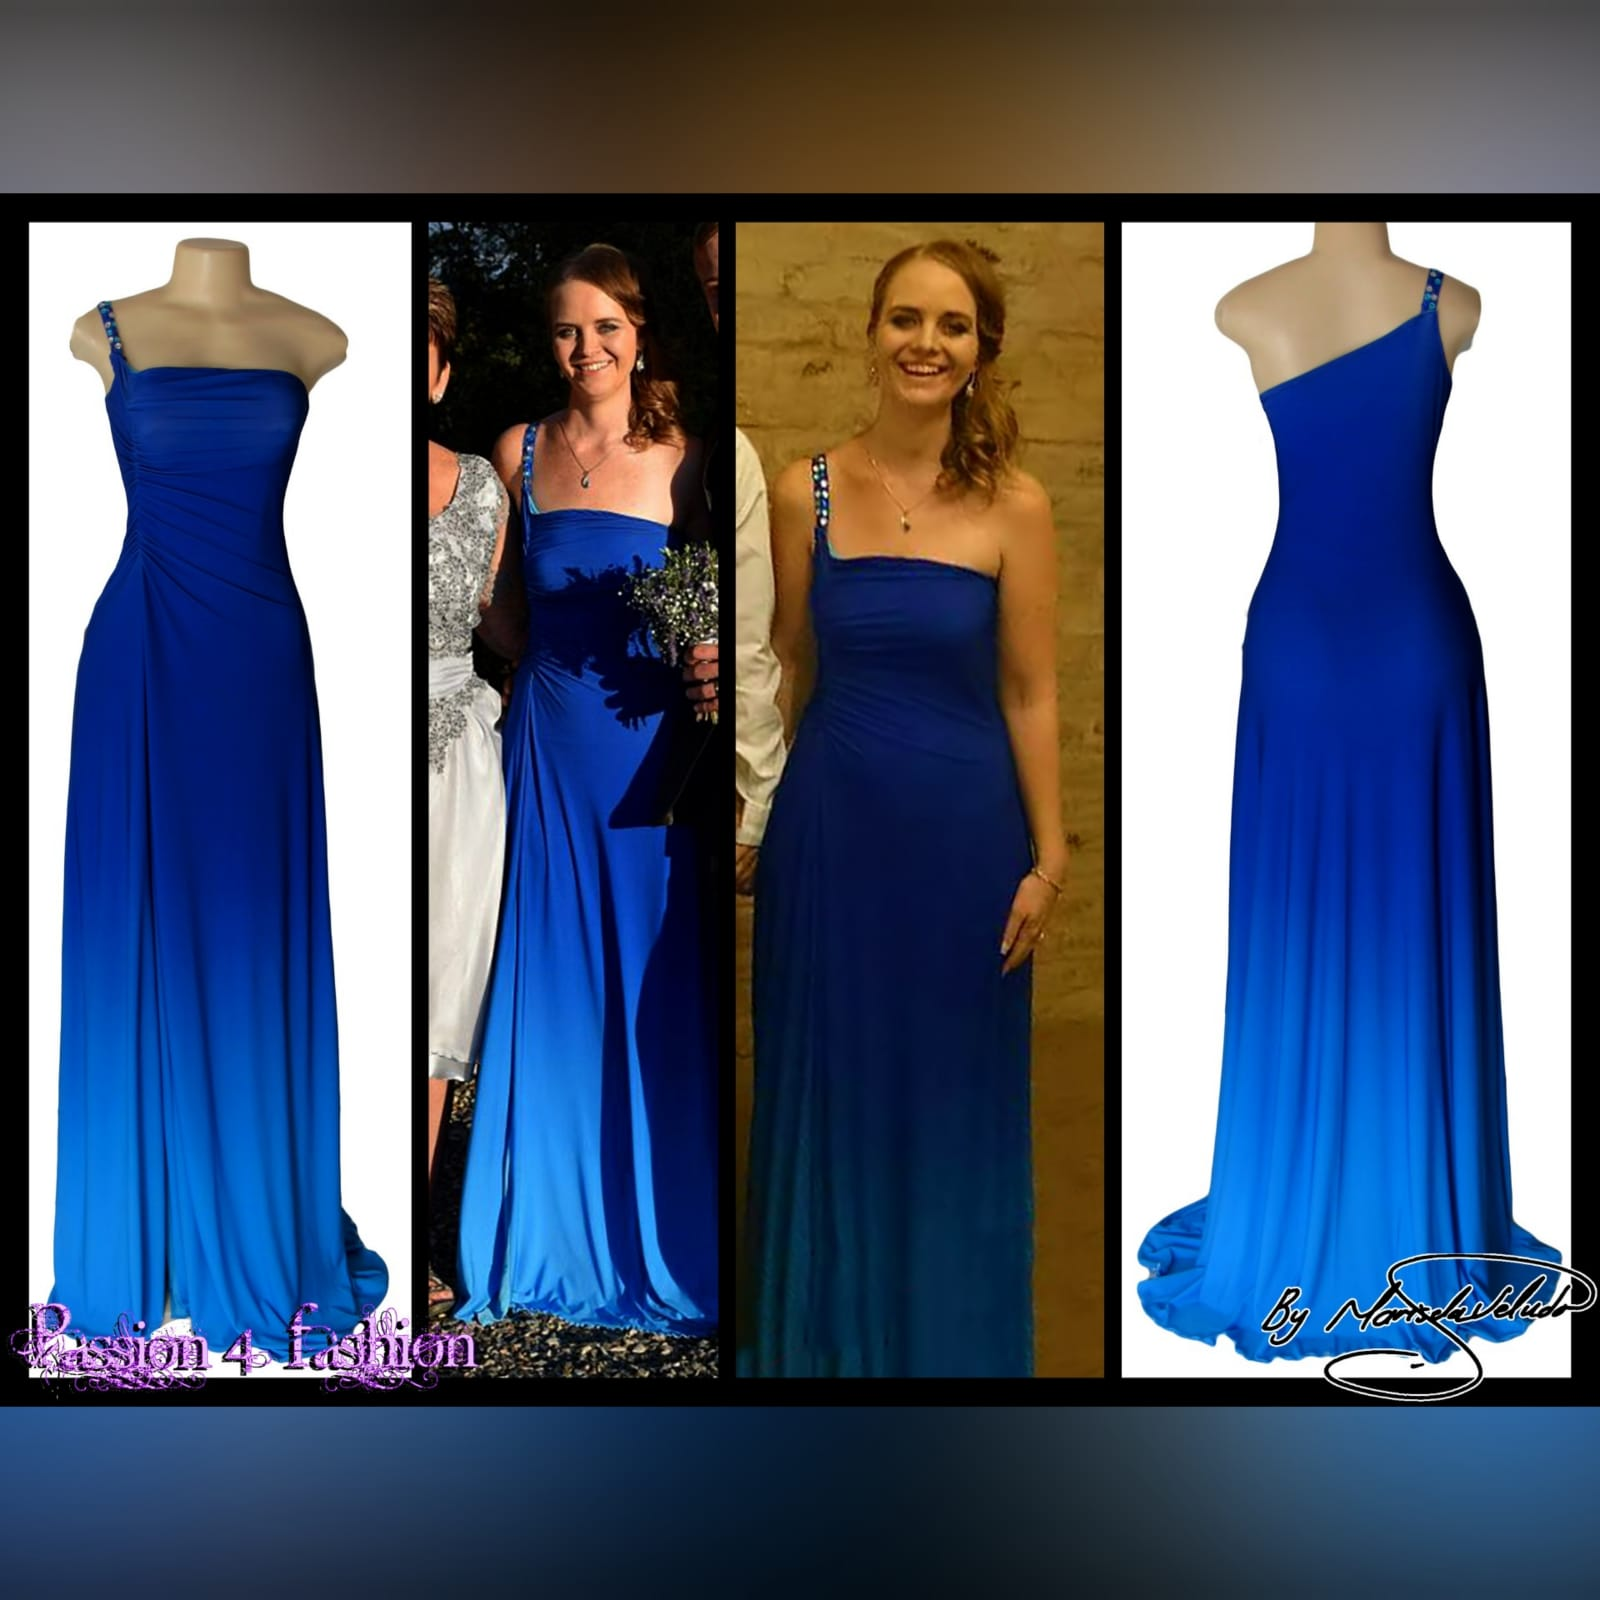 Blue ombre maid of honour dress 5 blue ombre maid of honour dress with a single beaded/bling shoulder design.